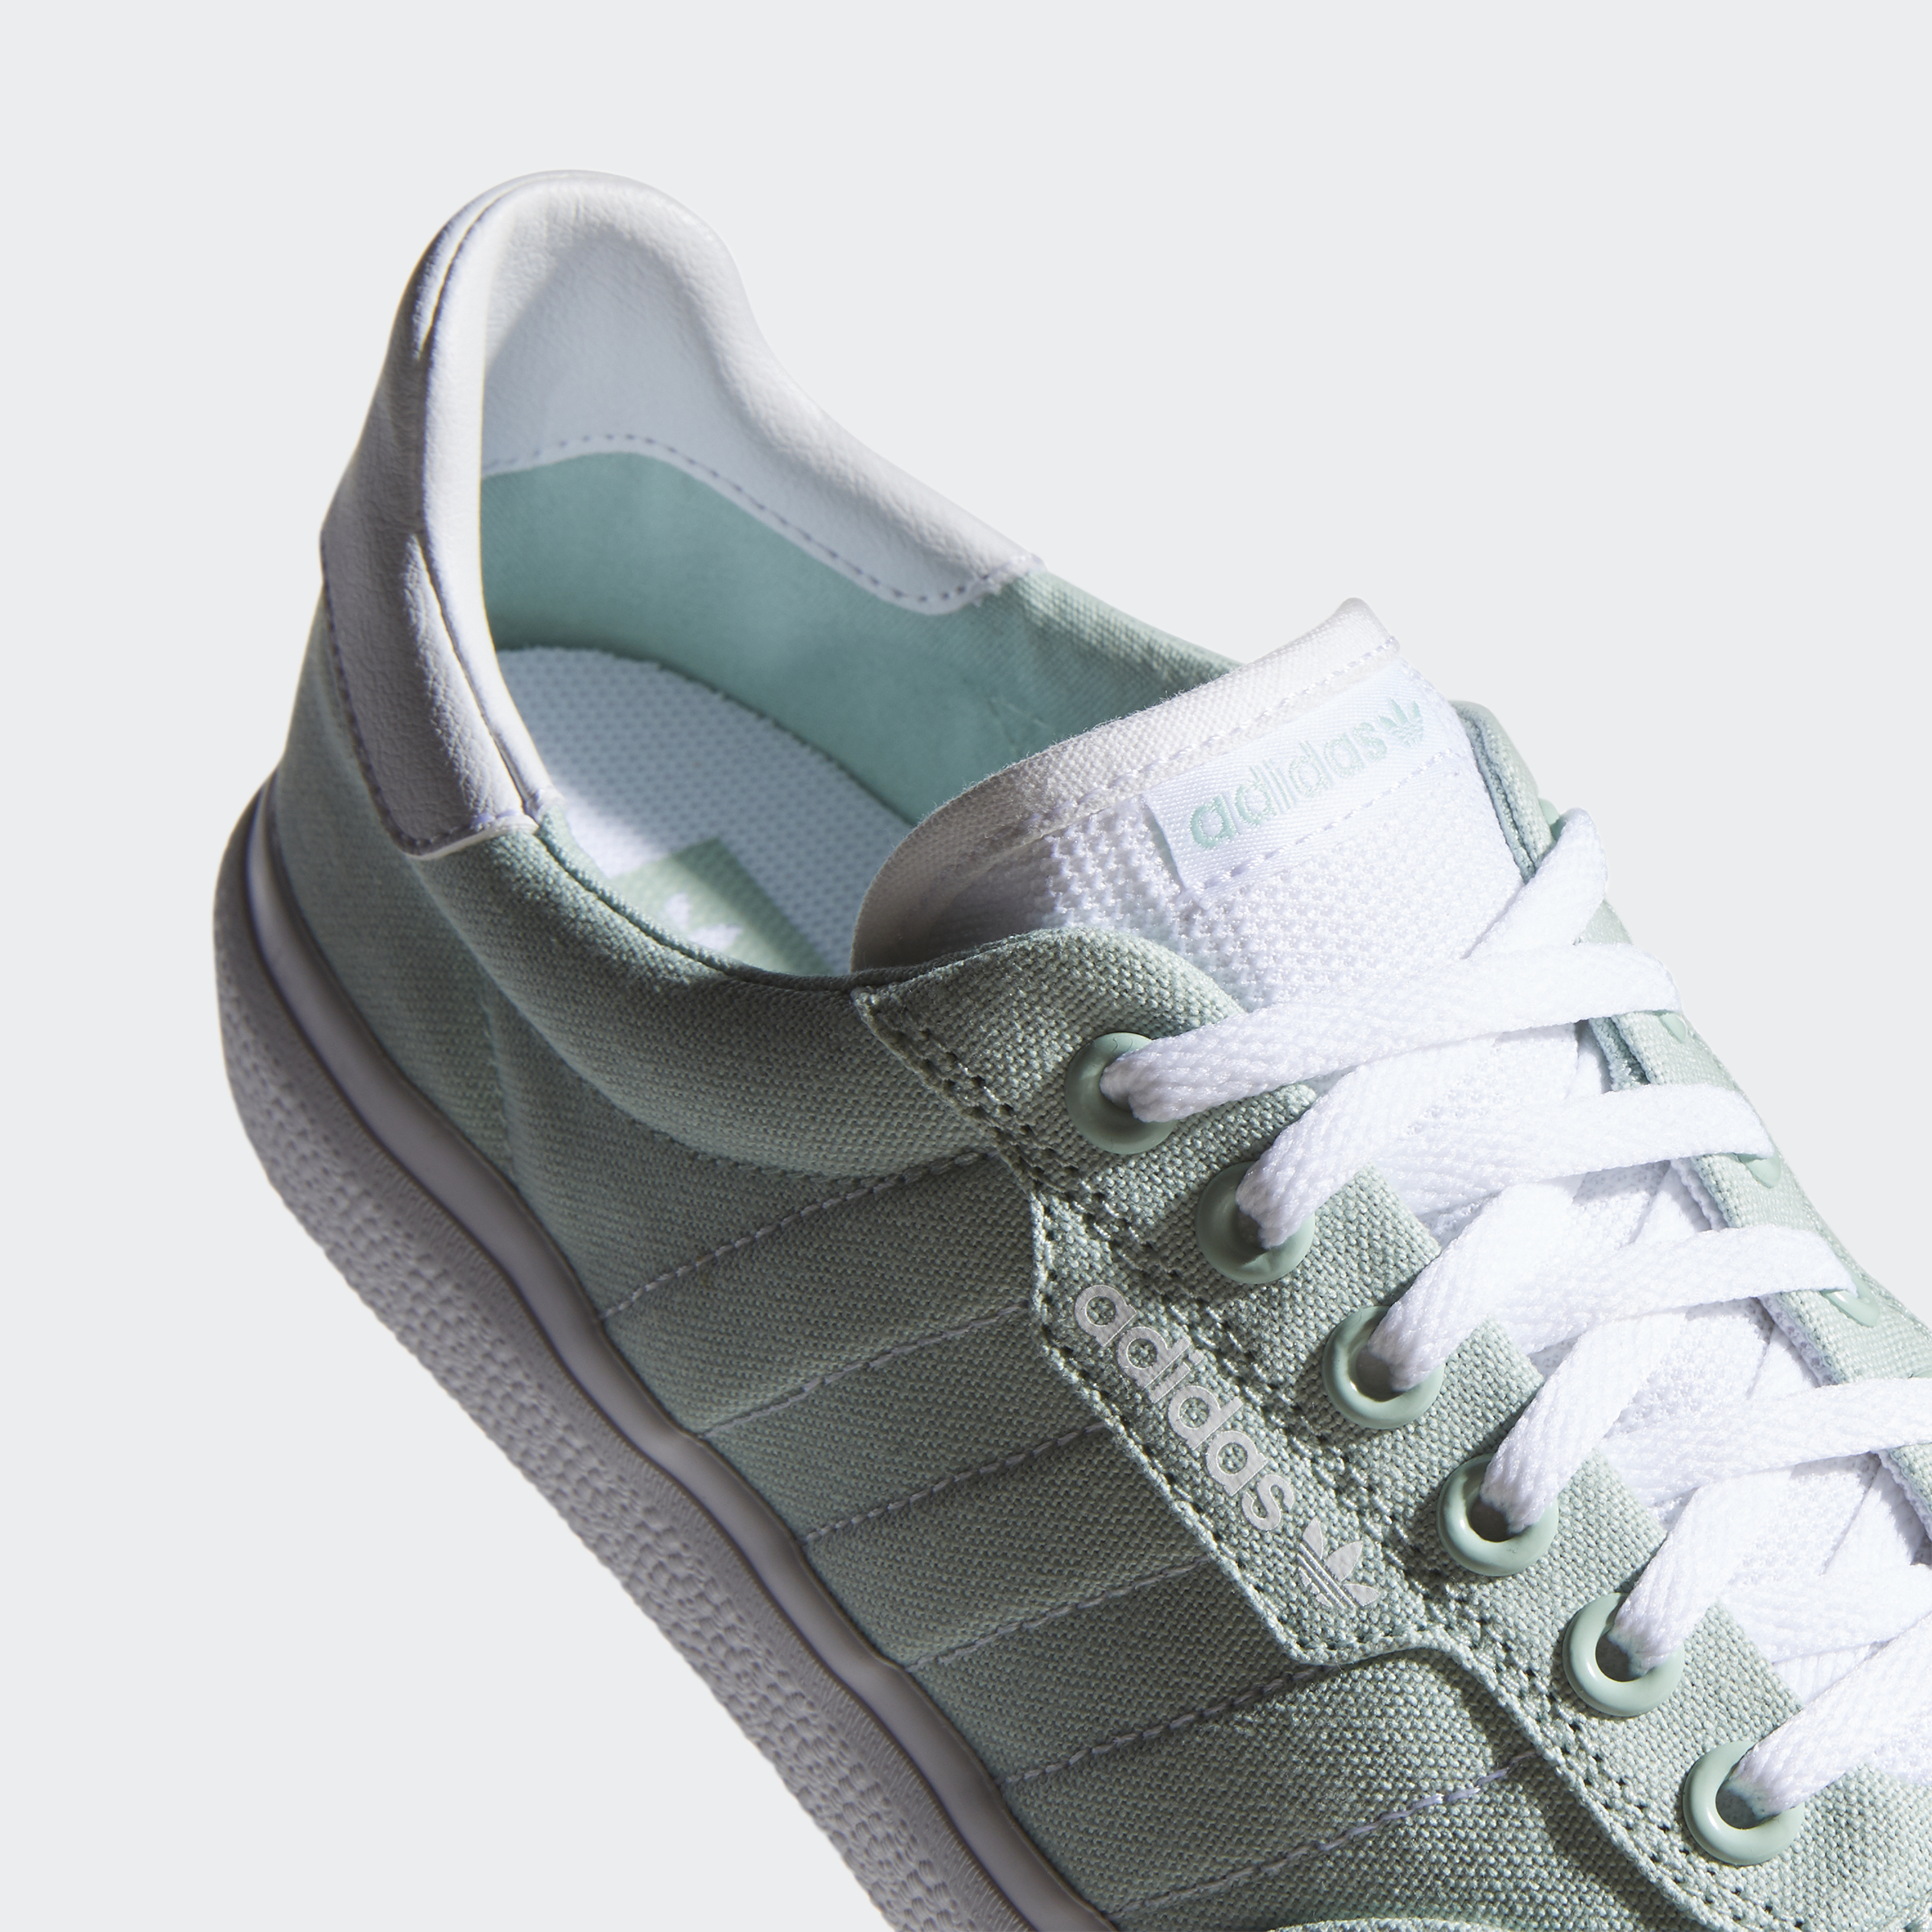 adidas-3MC-Shoes-Athletic-amp-Sneakers miniature 17